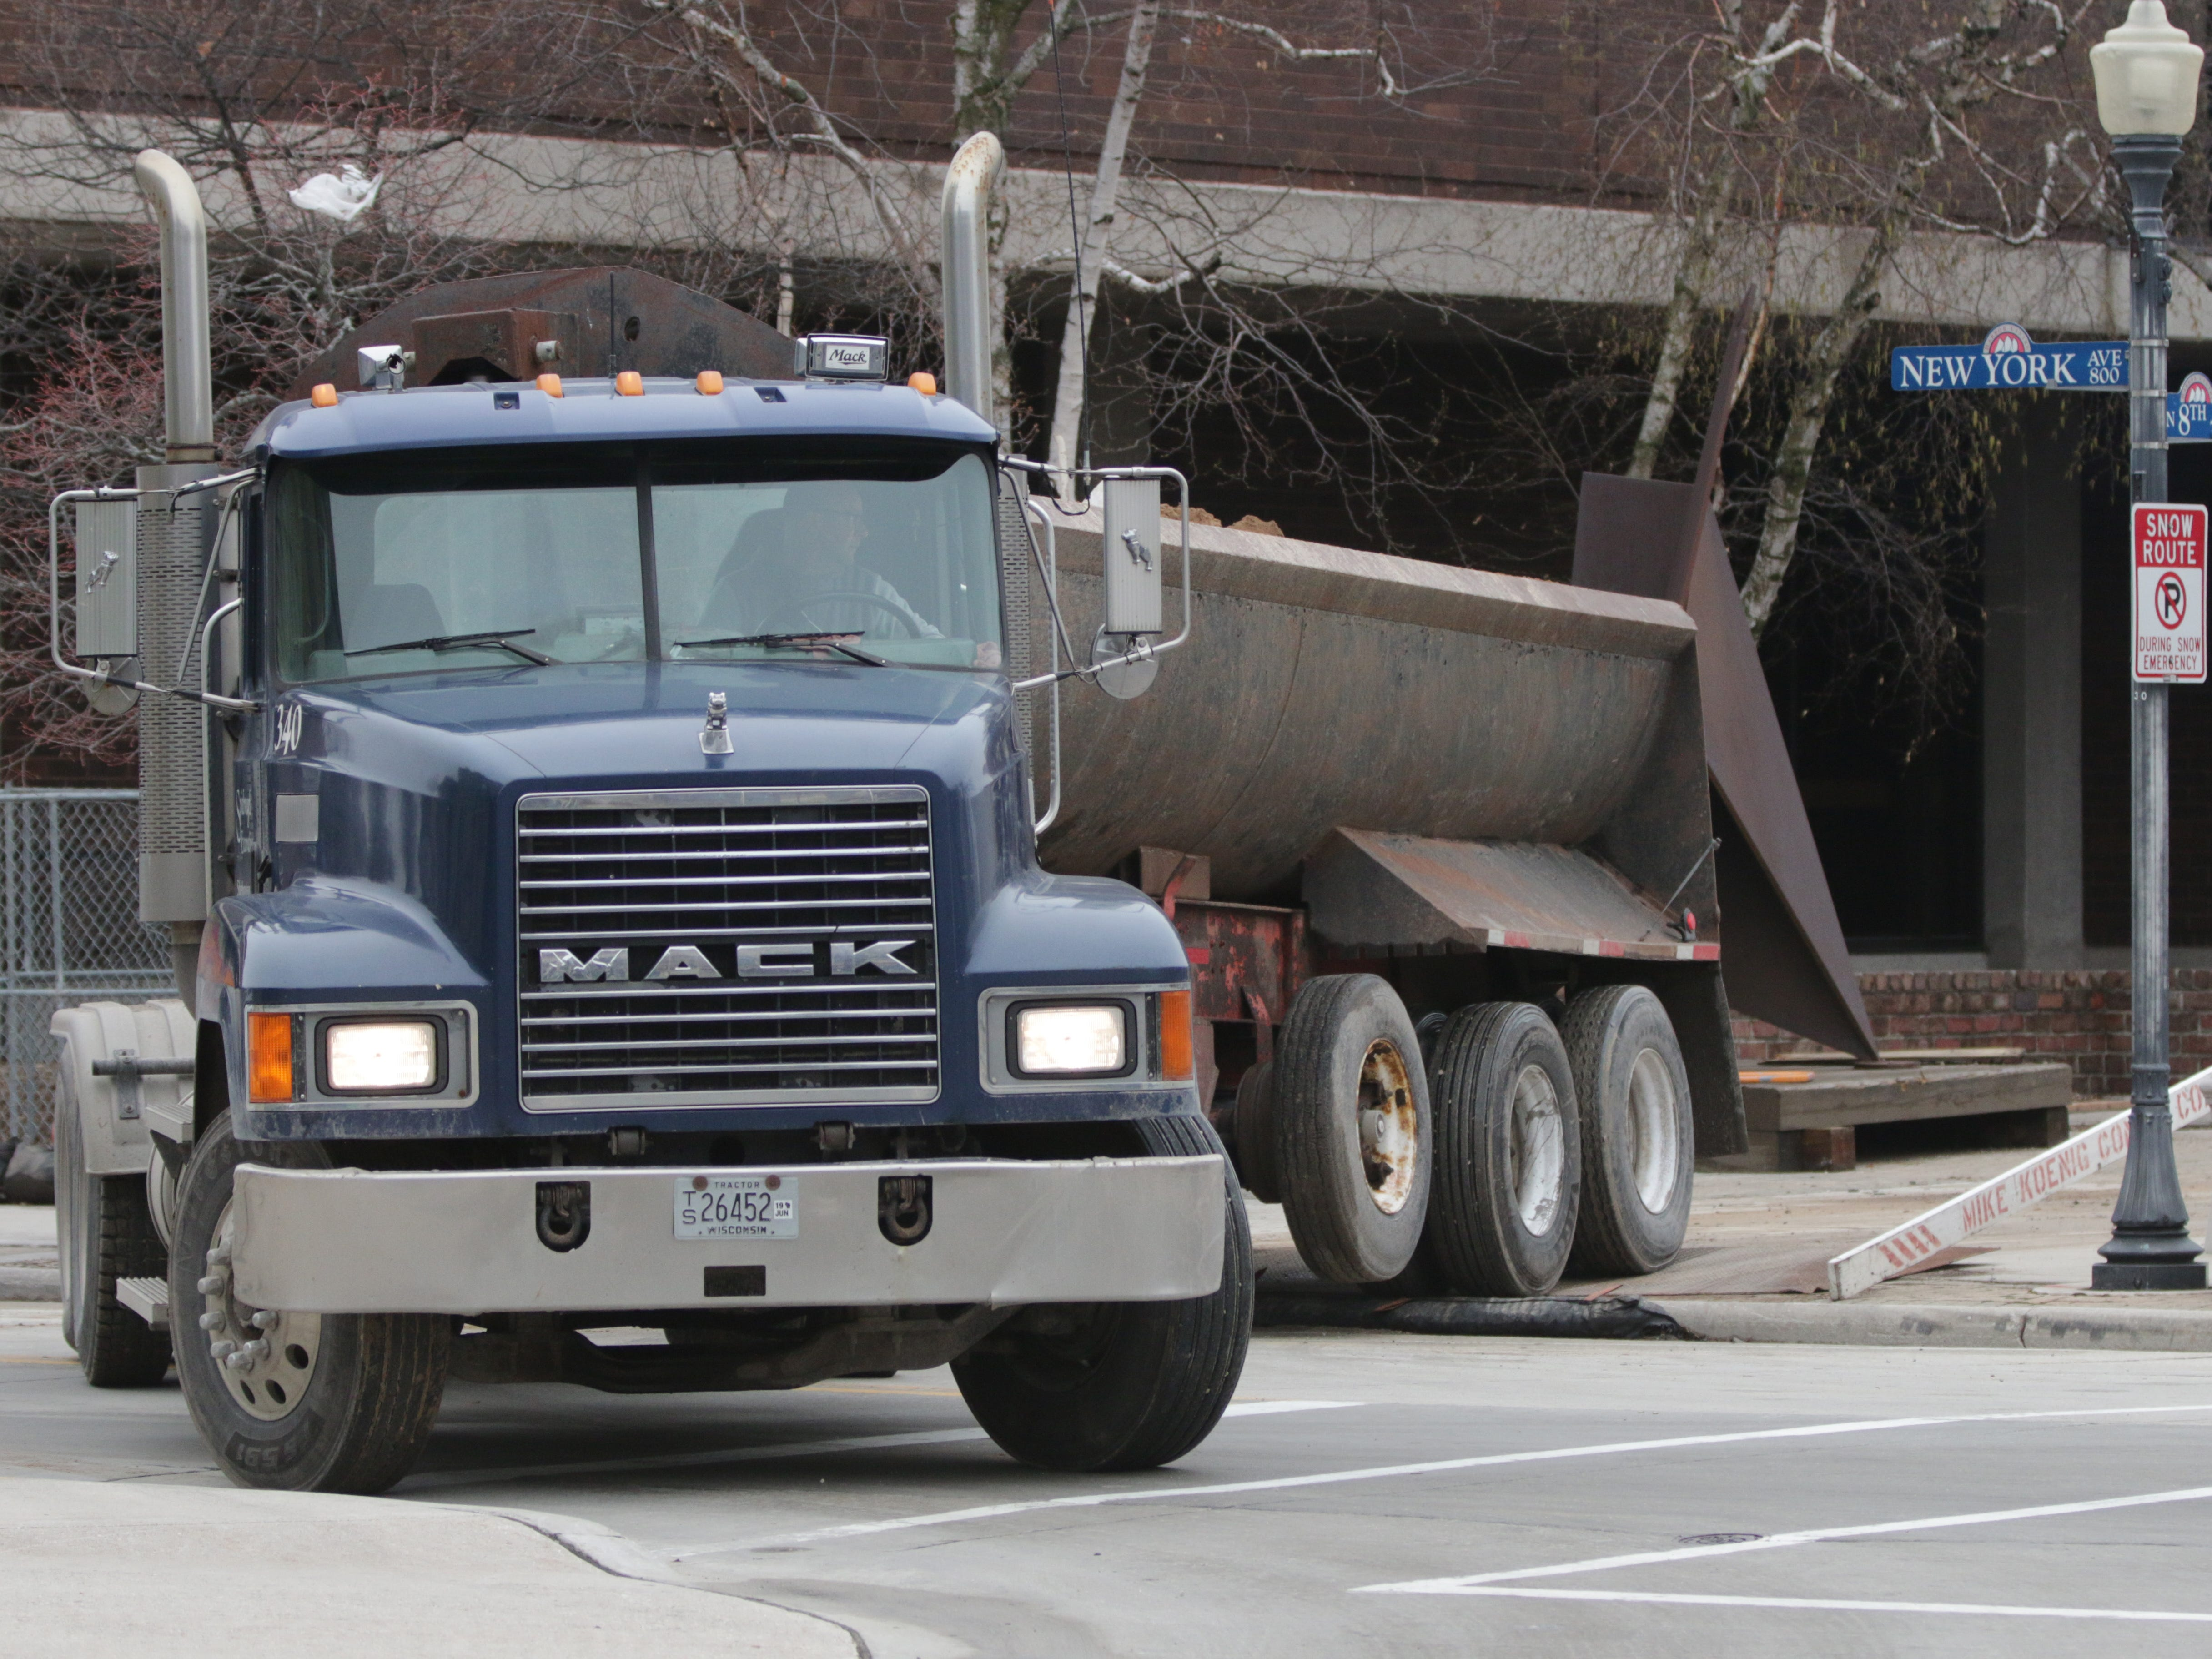 A construction truck hauls away materials from the Mead Public Library Plaza renovations as seen, Wednesday, May 1, 2019, in Sheboygan, Wis.